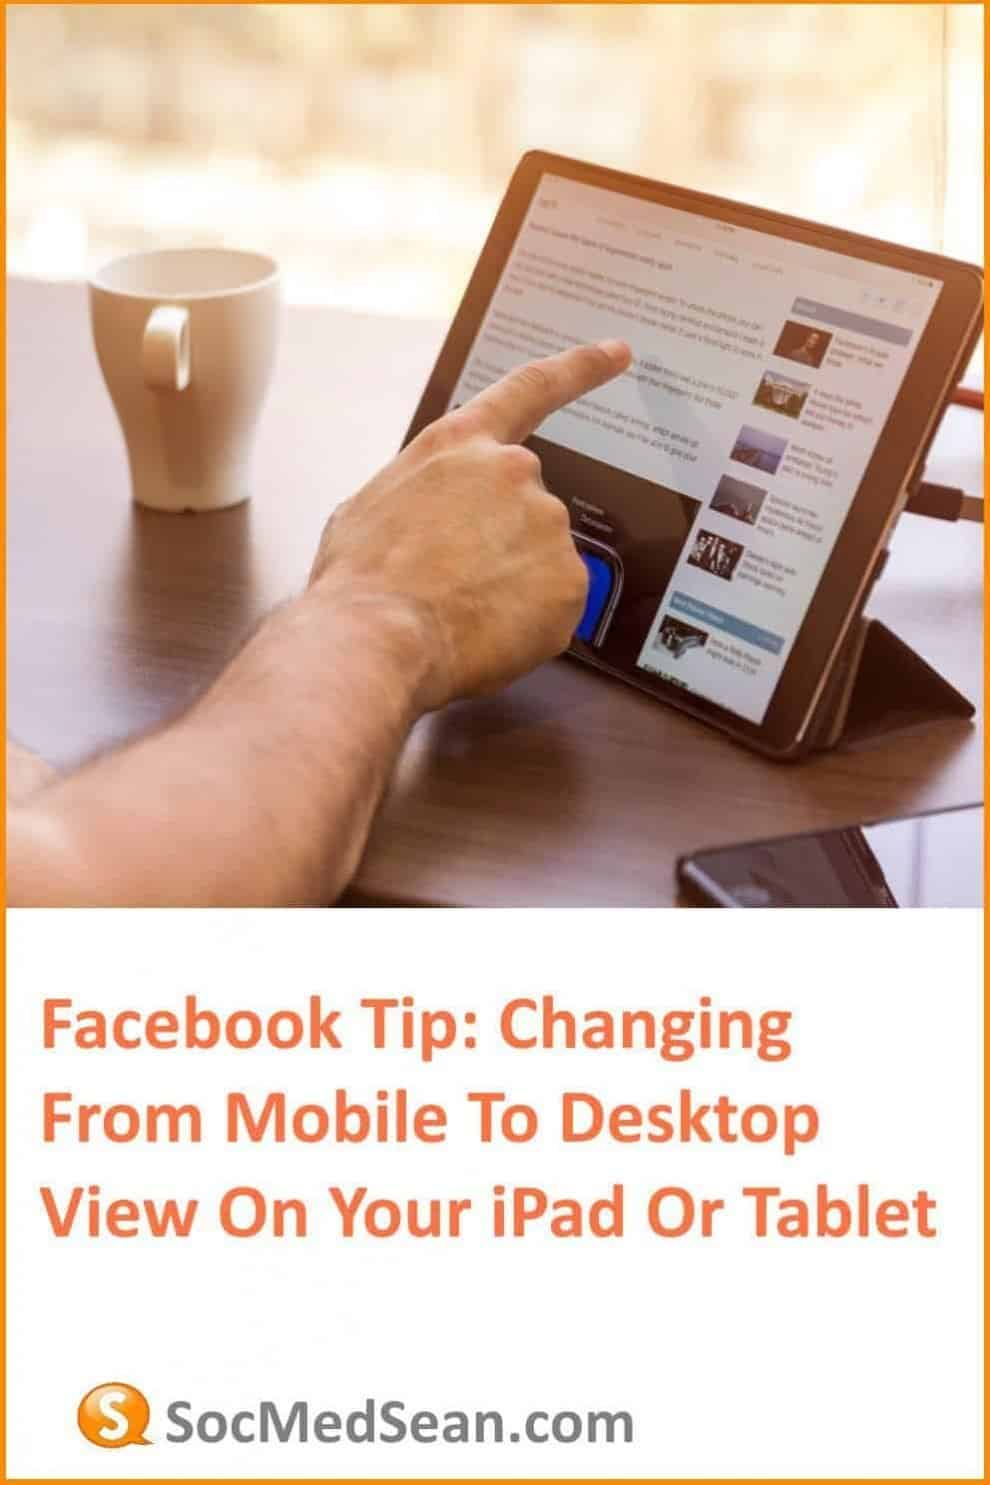 Tips on how to change Facebook from mobile to desktop view on your tablet or iPad